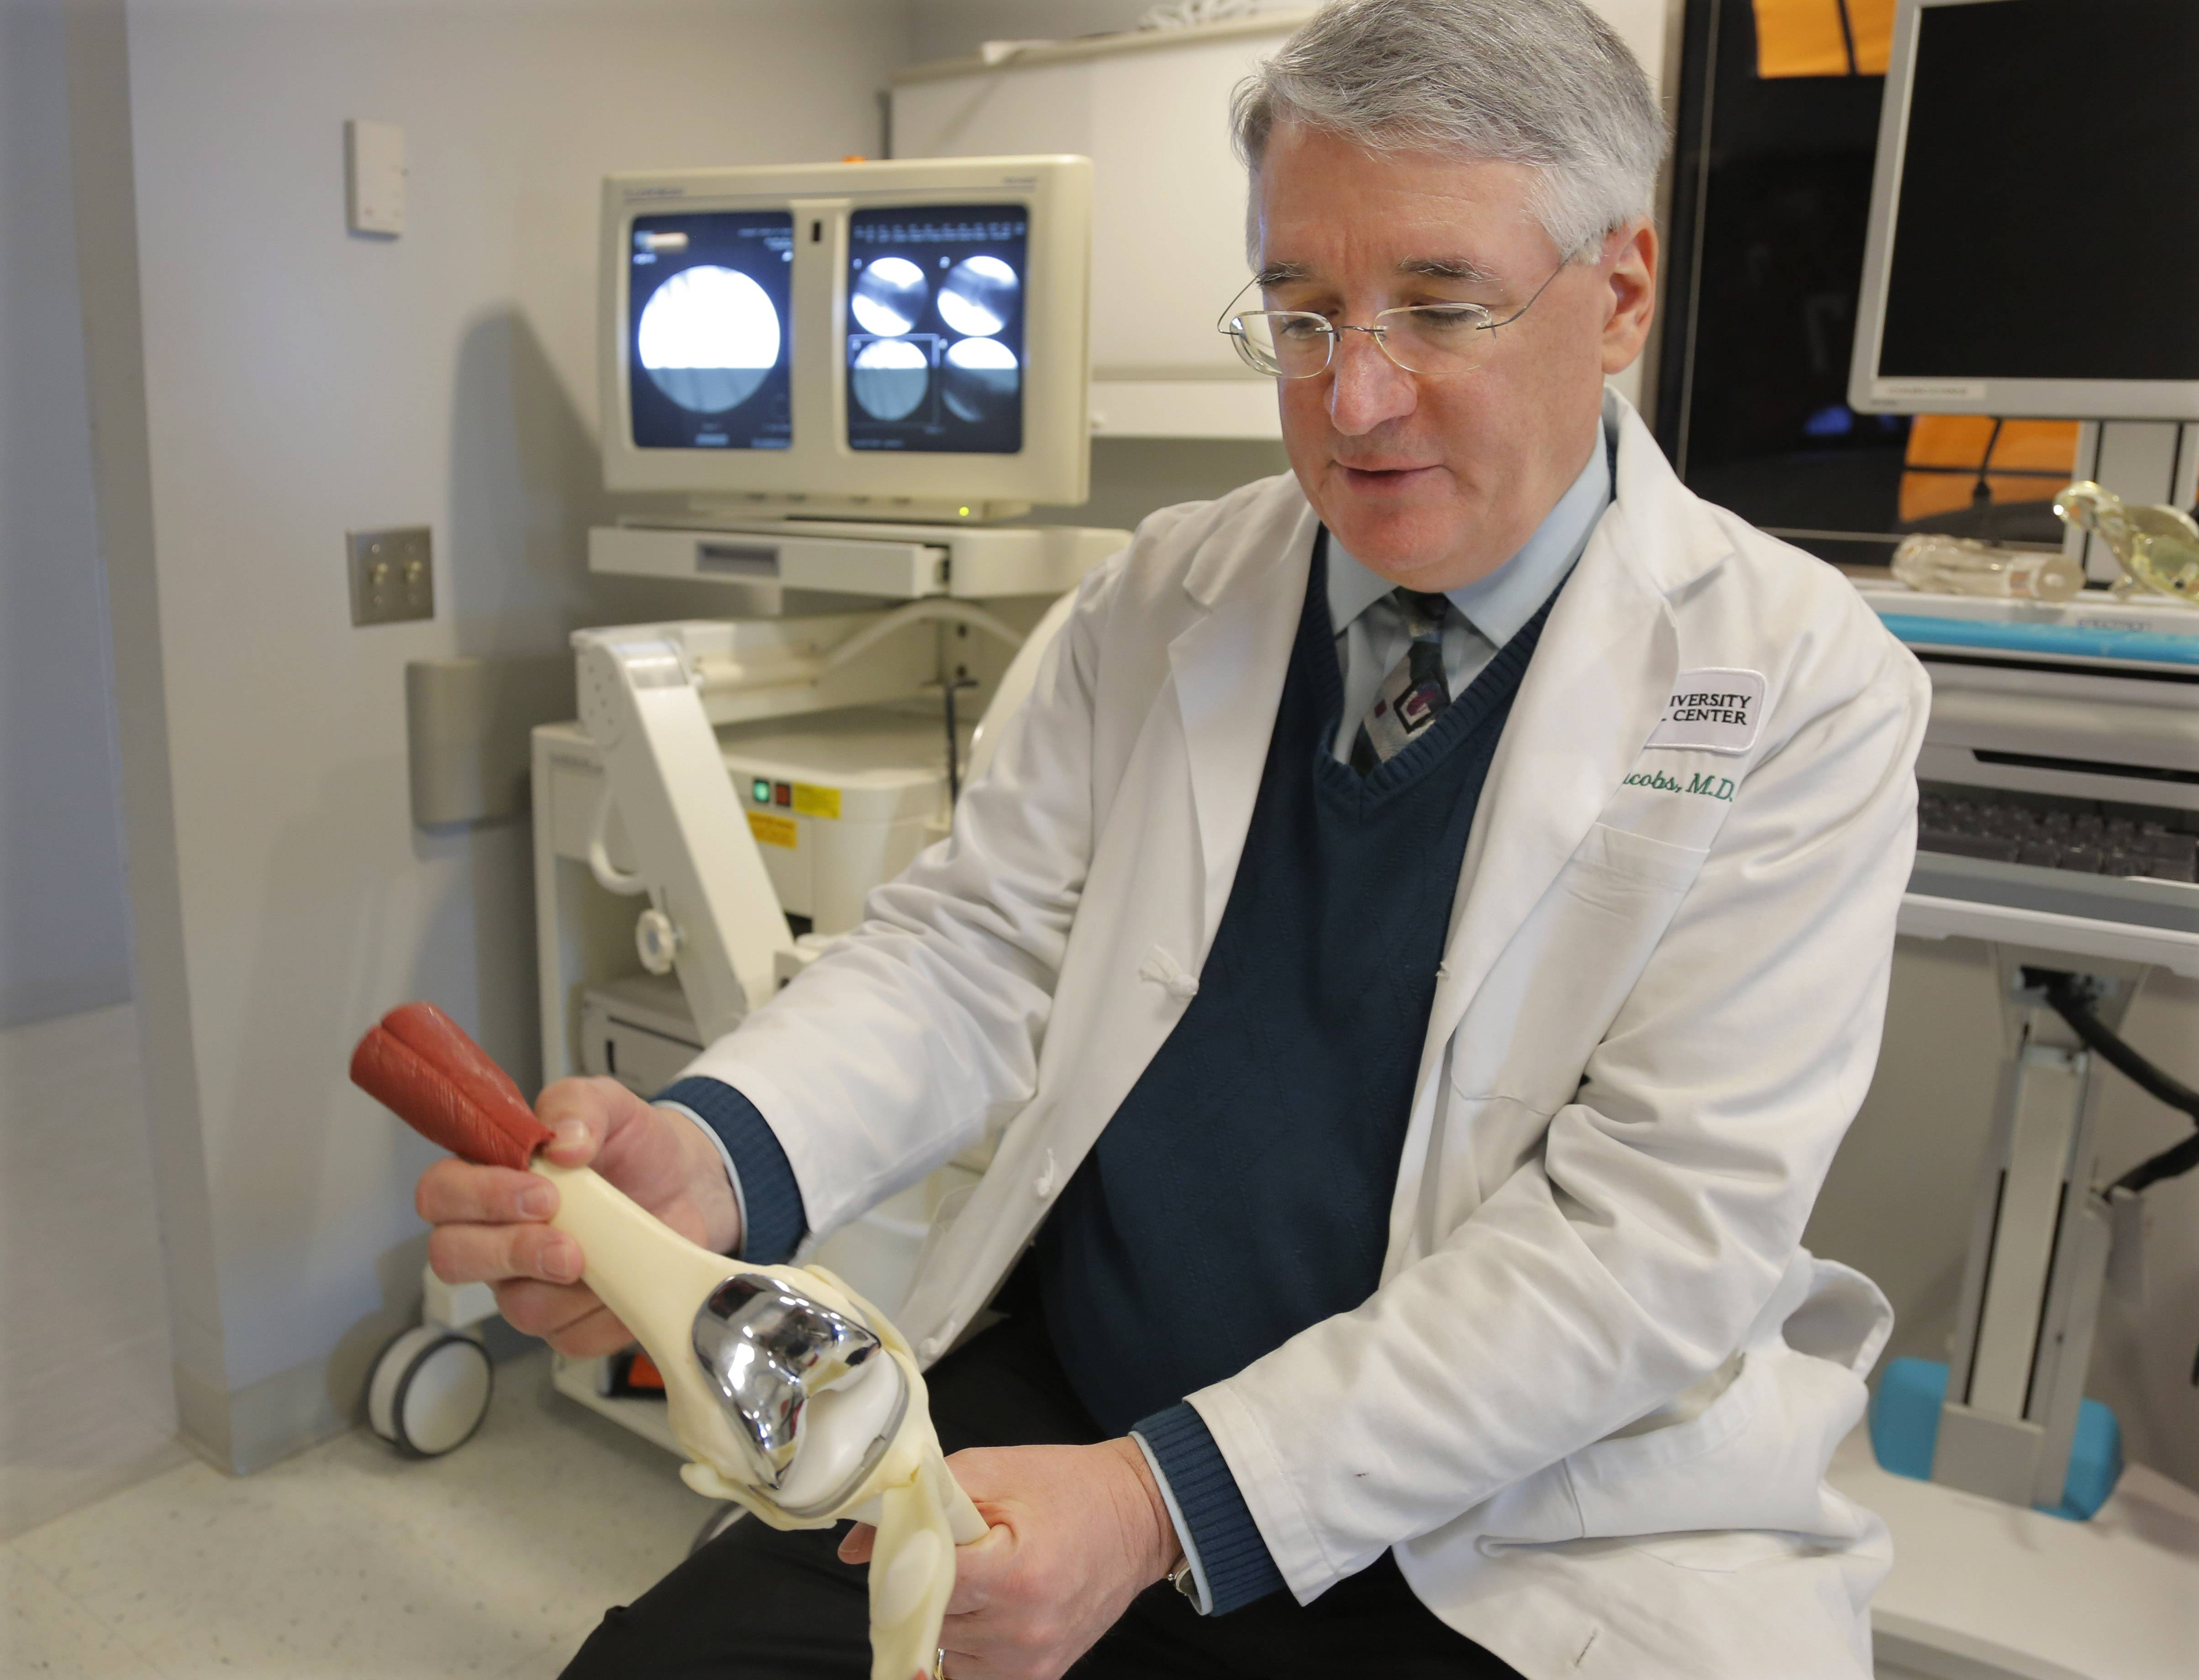 Dr. Joshua Jacobs, orthopedics surgery chief at Rush University Medical Center and president of the American Academy of Orthopaedic Surgeons in Chicago, holds a model of a tri-compartmental total knee replacement. About two of every 100 Americans now has an artificial joint, doctors are reporting.